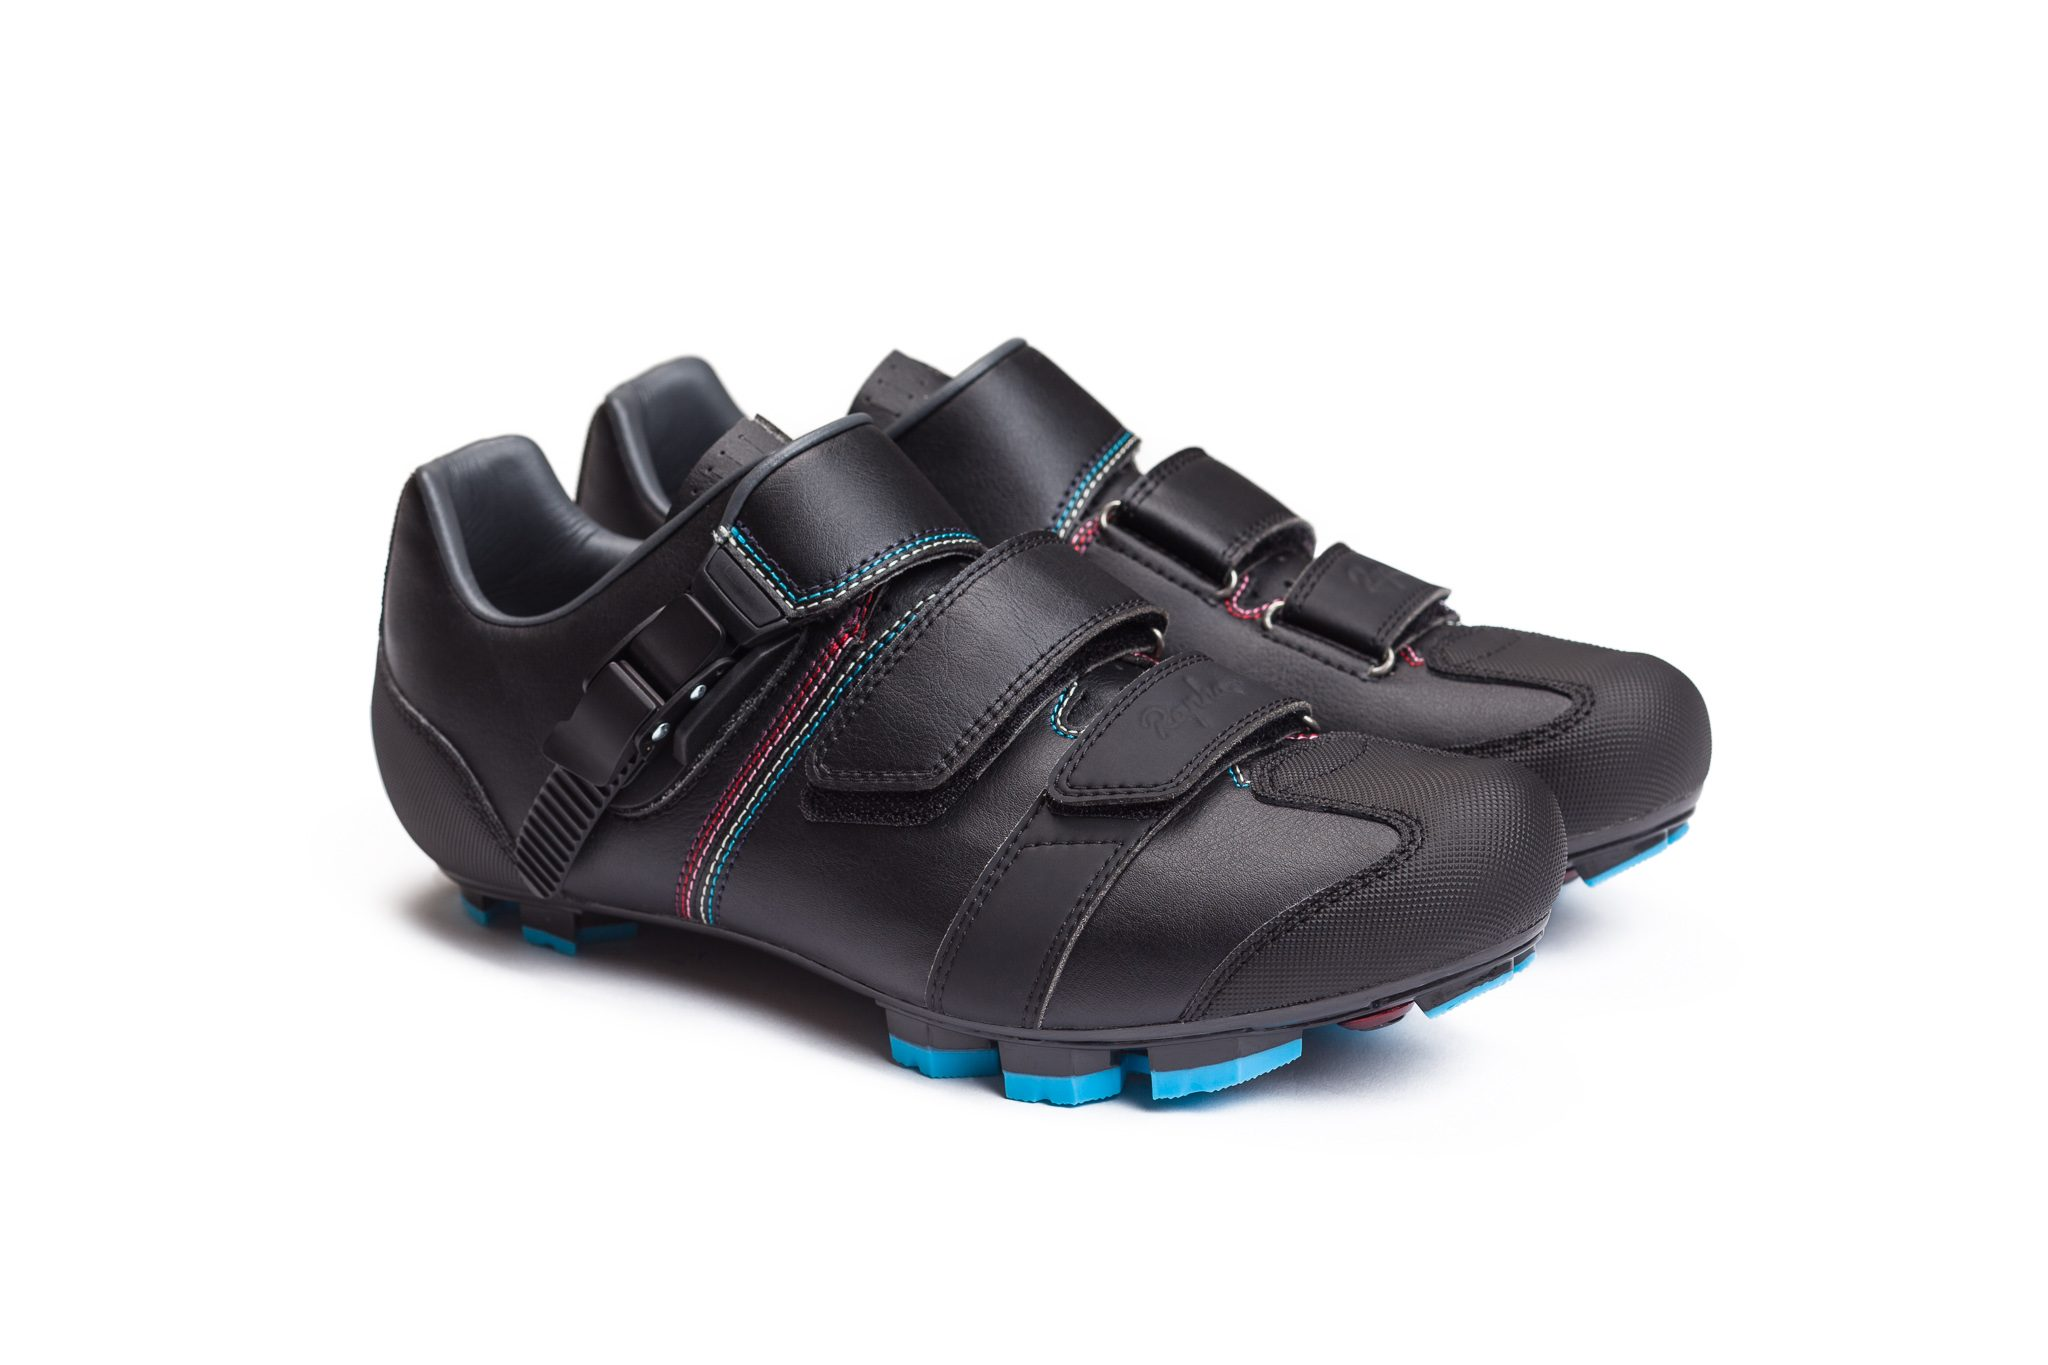 AW14-Rapha-Cross-Shoe-Main-1